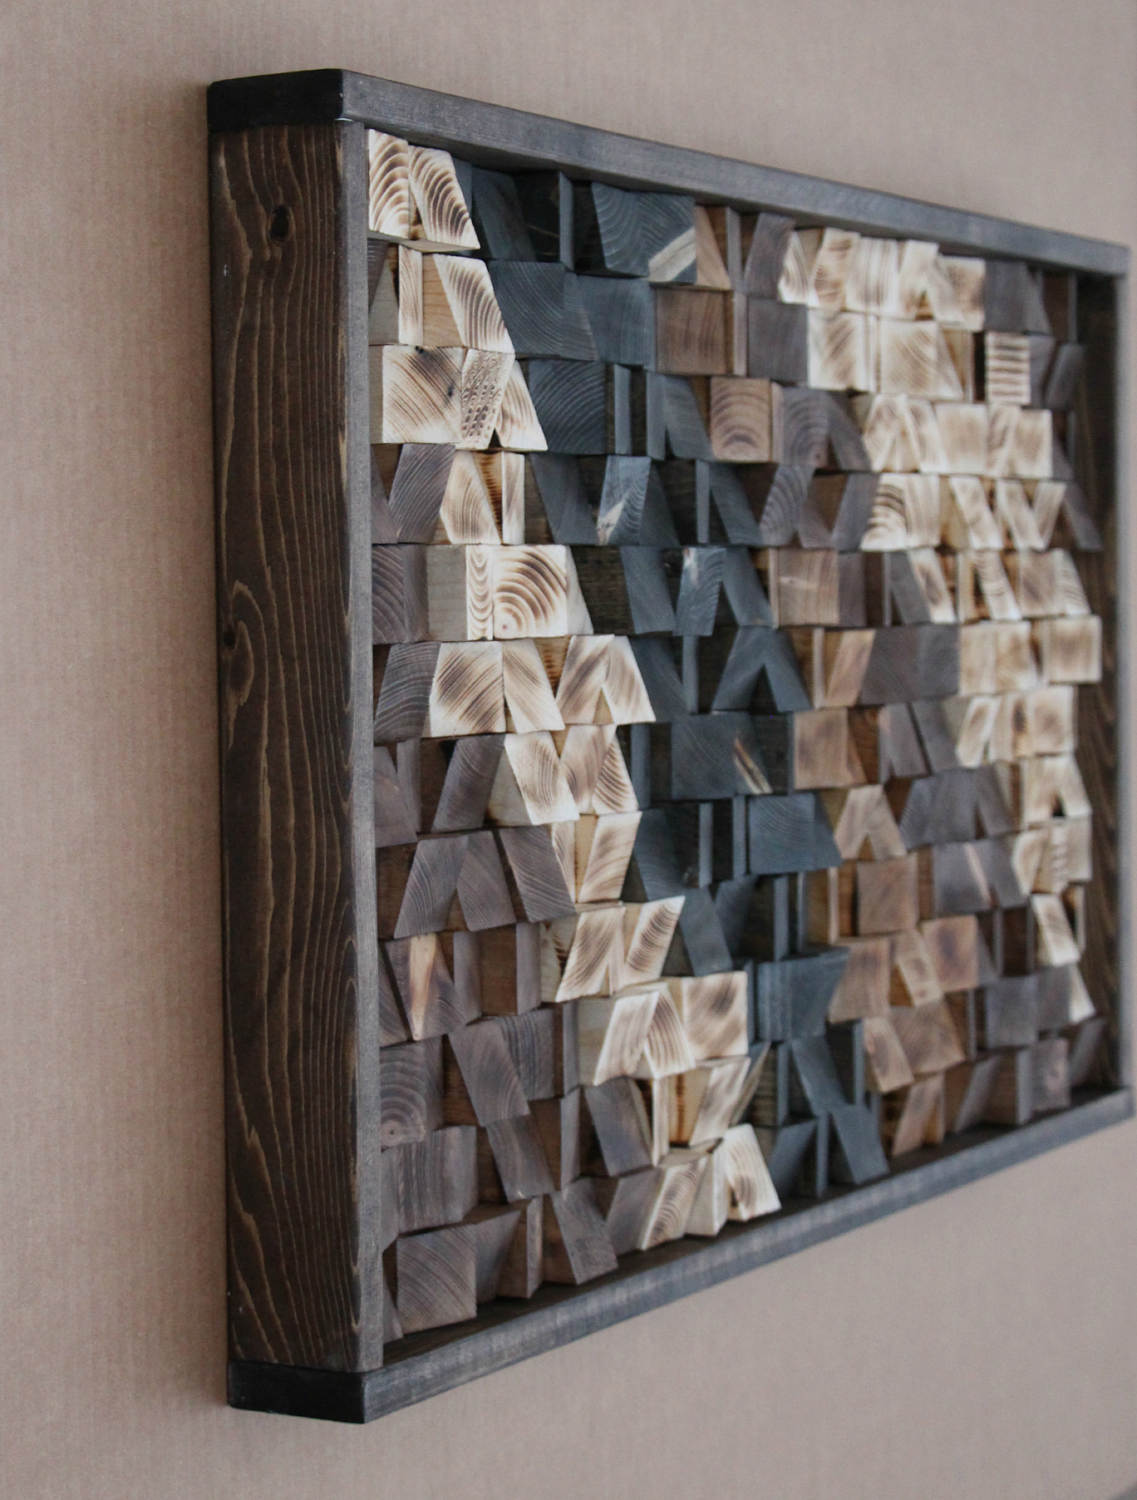 Buy Large Reclaimed Wood Wall Art Wood Wall Decor Headboard Geometric Pattern Wood Mosaic Geometric Art 17x30 Gbandwood Wooden Wall Art Wood Wall Decor Wooden Wall Decor Modern Wall Art